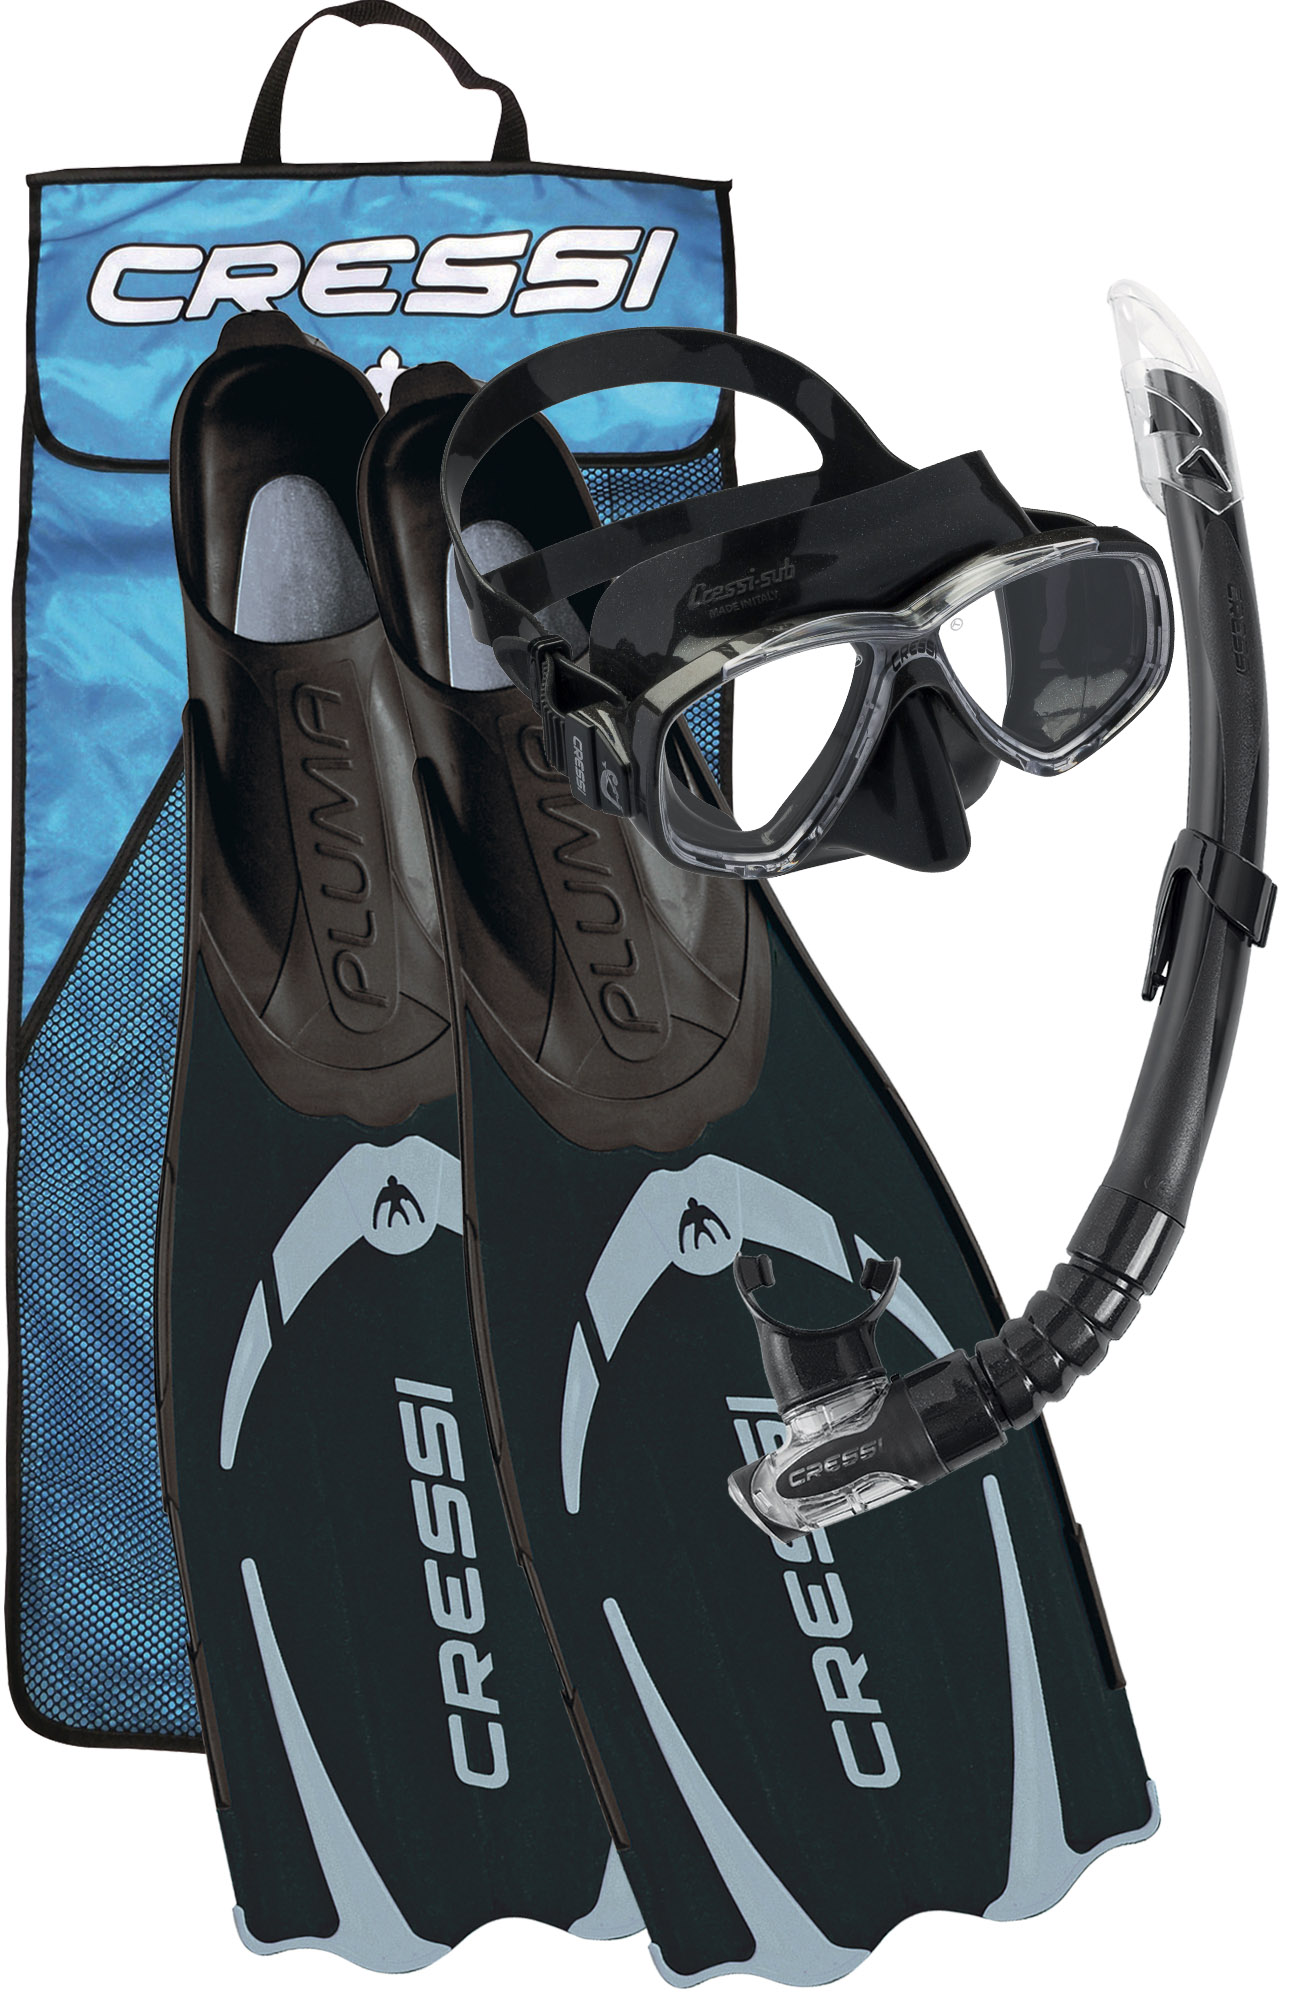 CRESSI - Pluma Bag Schwarz ABC Set Gr. 35/36